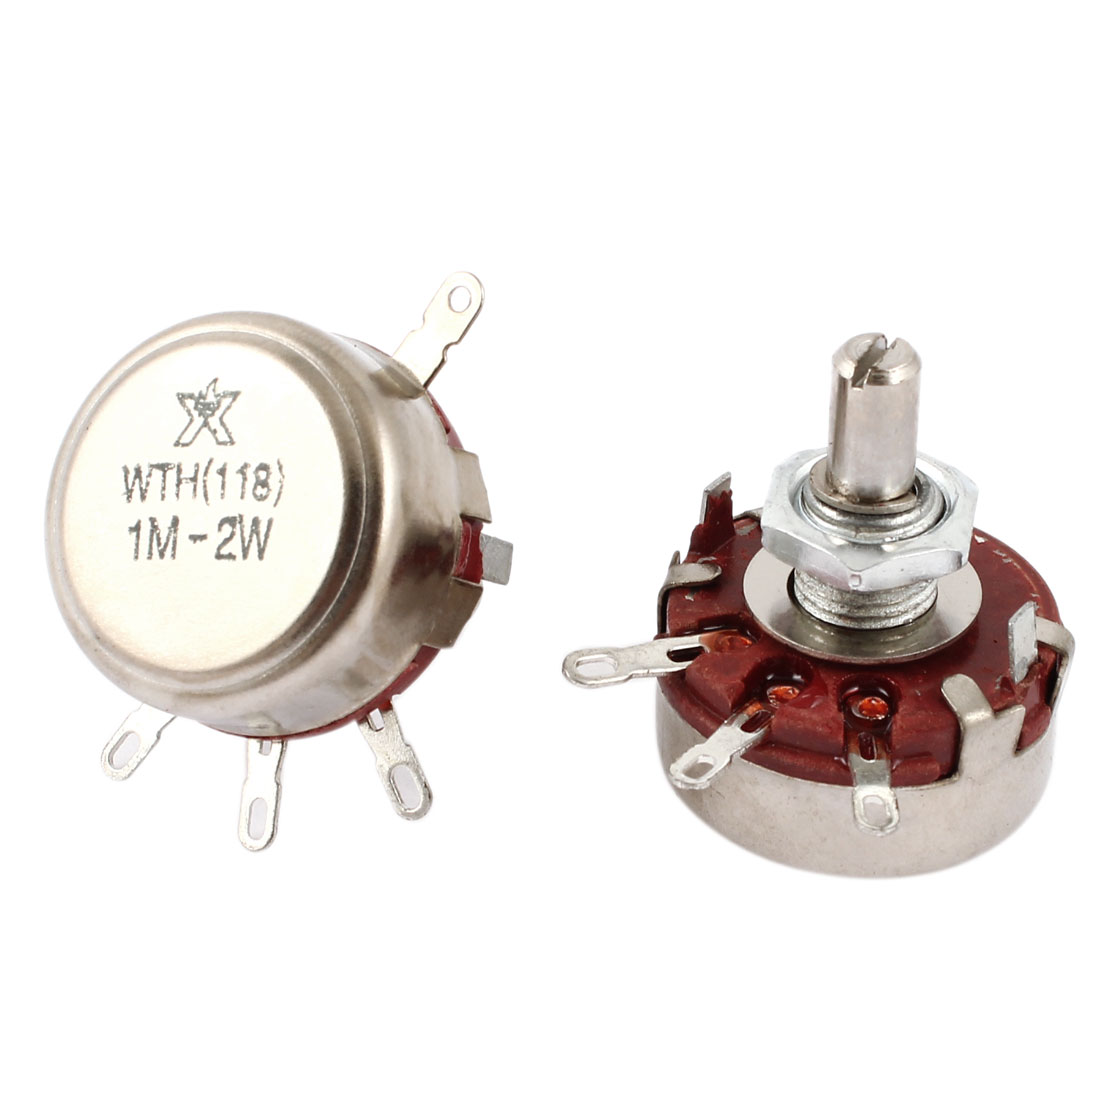 2 Pcs Single Turn Rotary Taper Carbon Potentiometer 2W Watt 1M Ohm WTH118